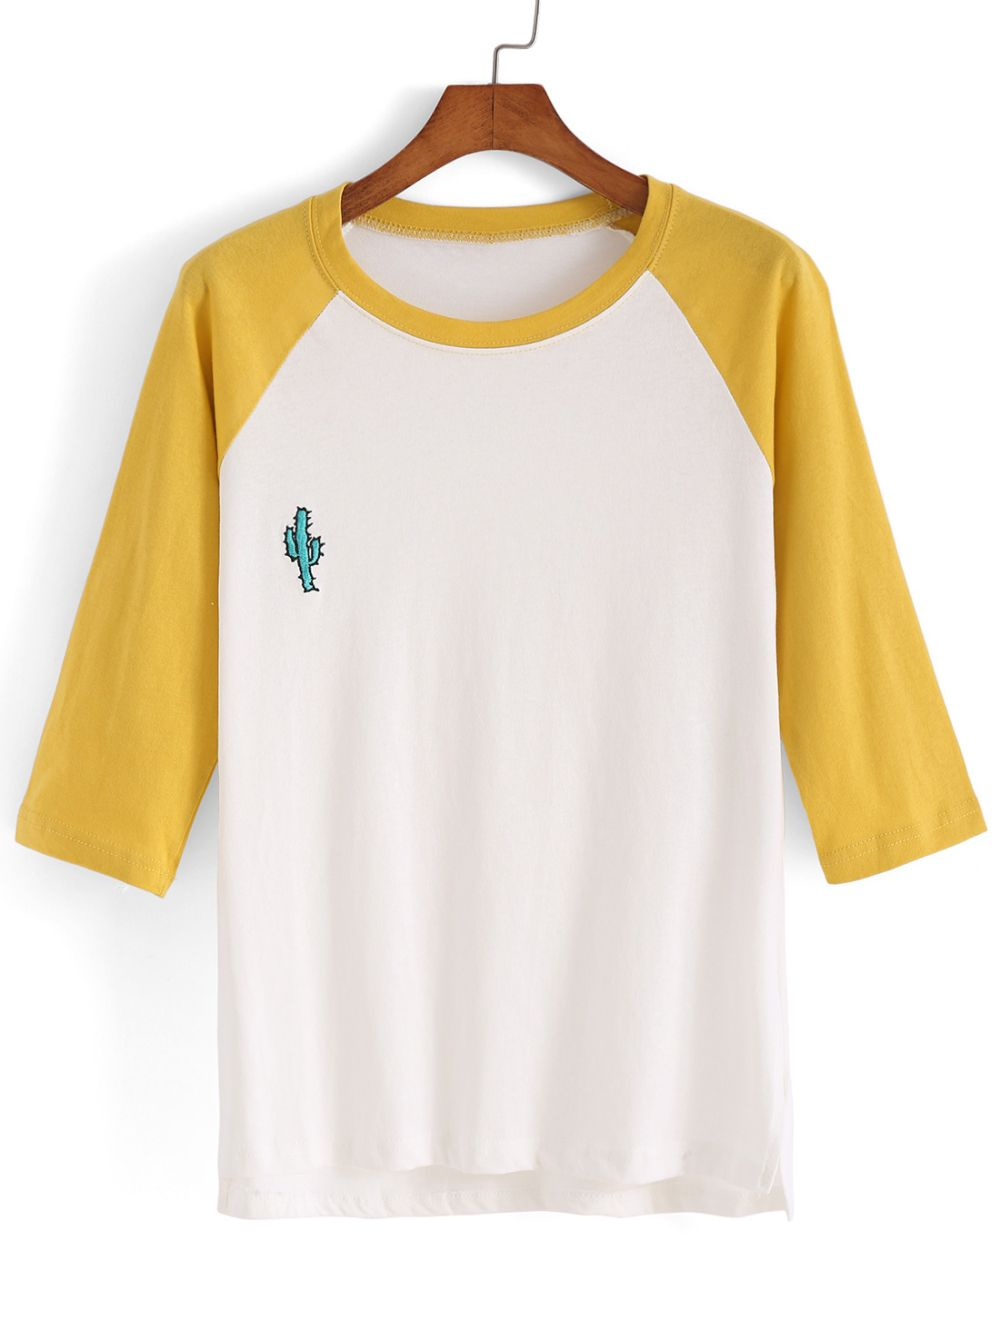 Dip hem color block embroidered t shirt i m shoppinnggg